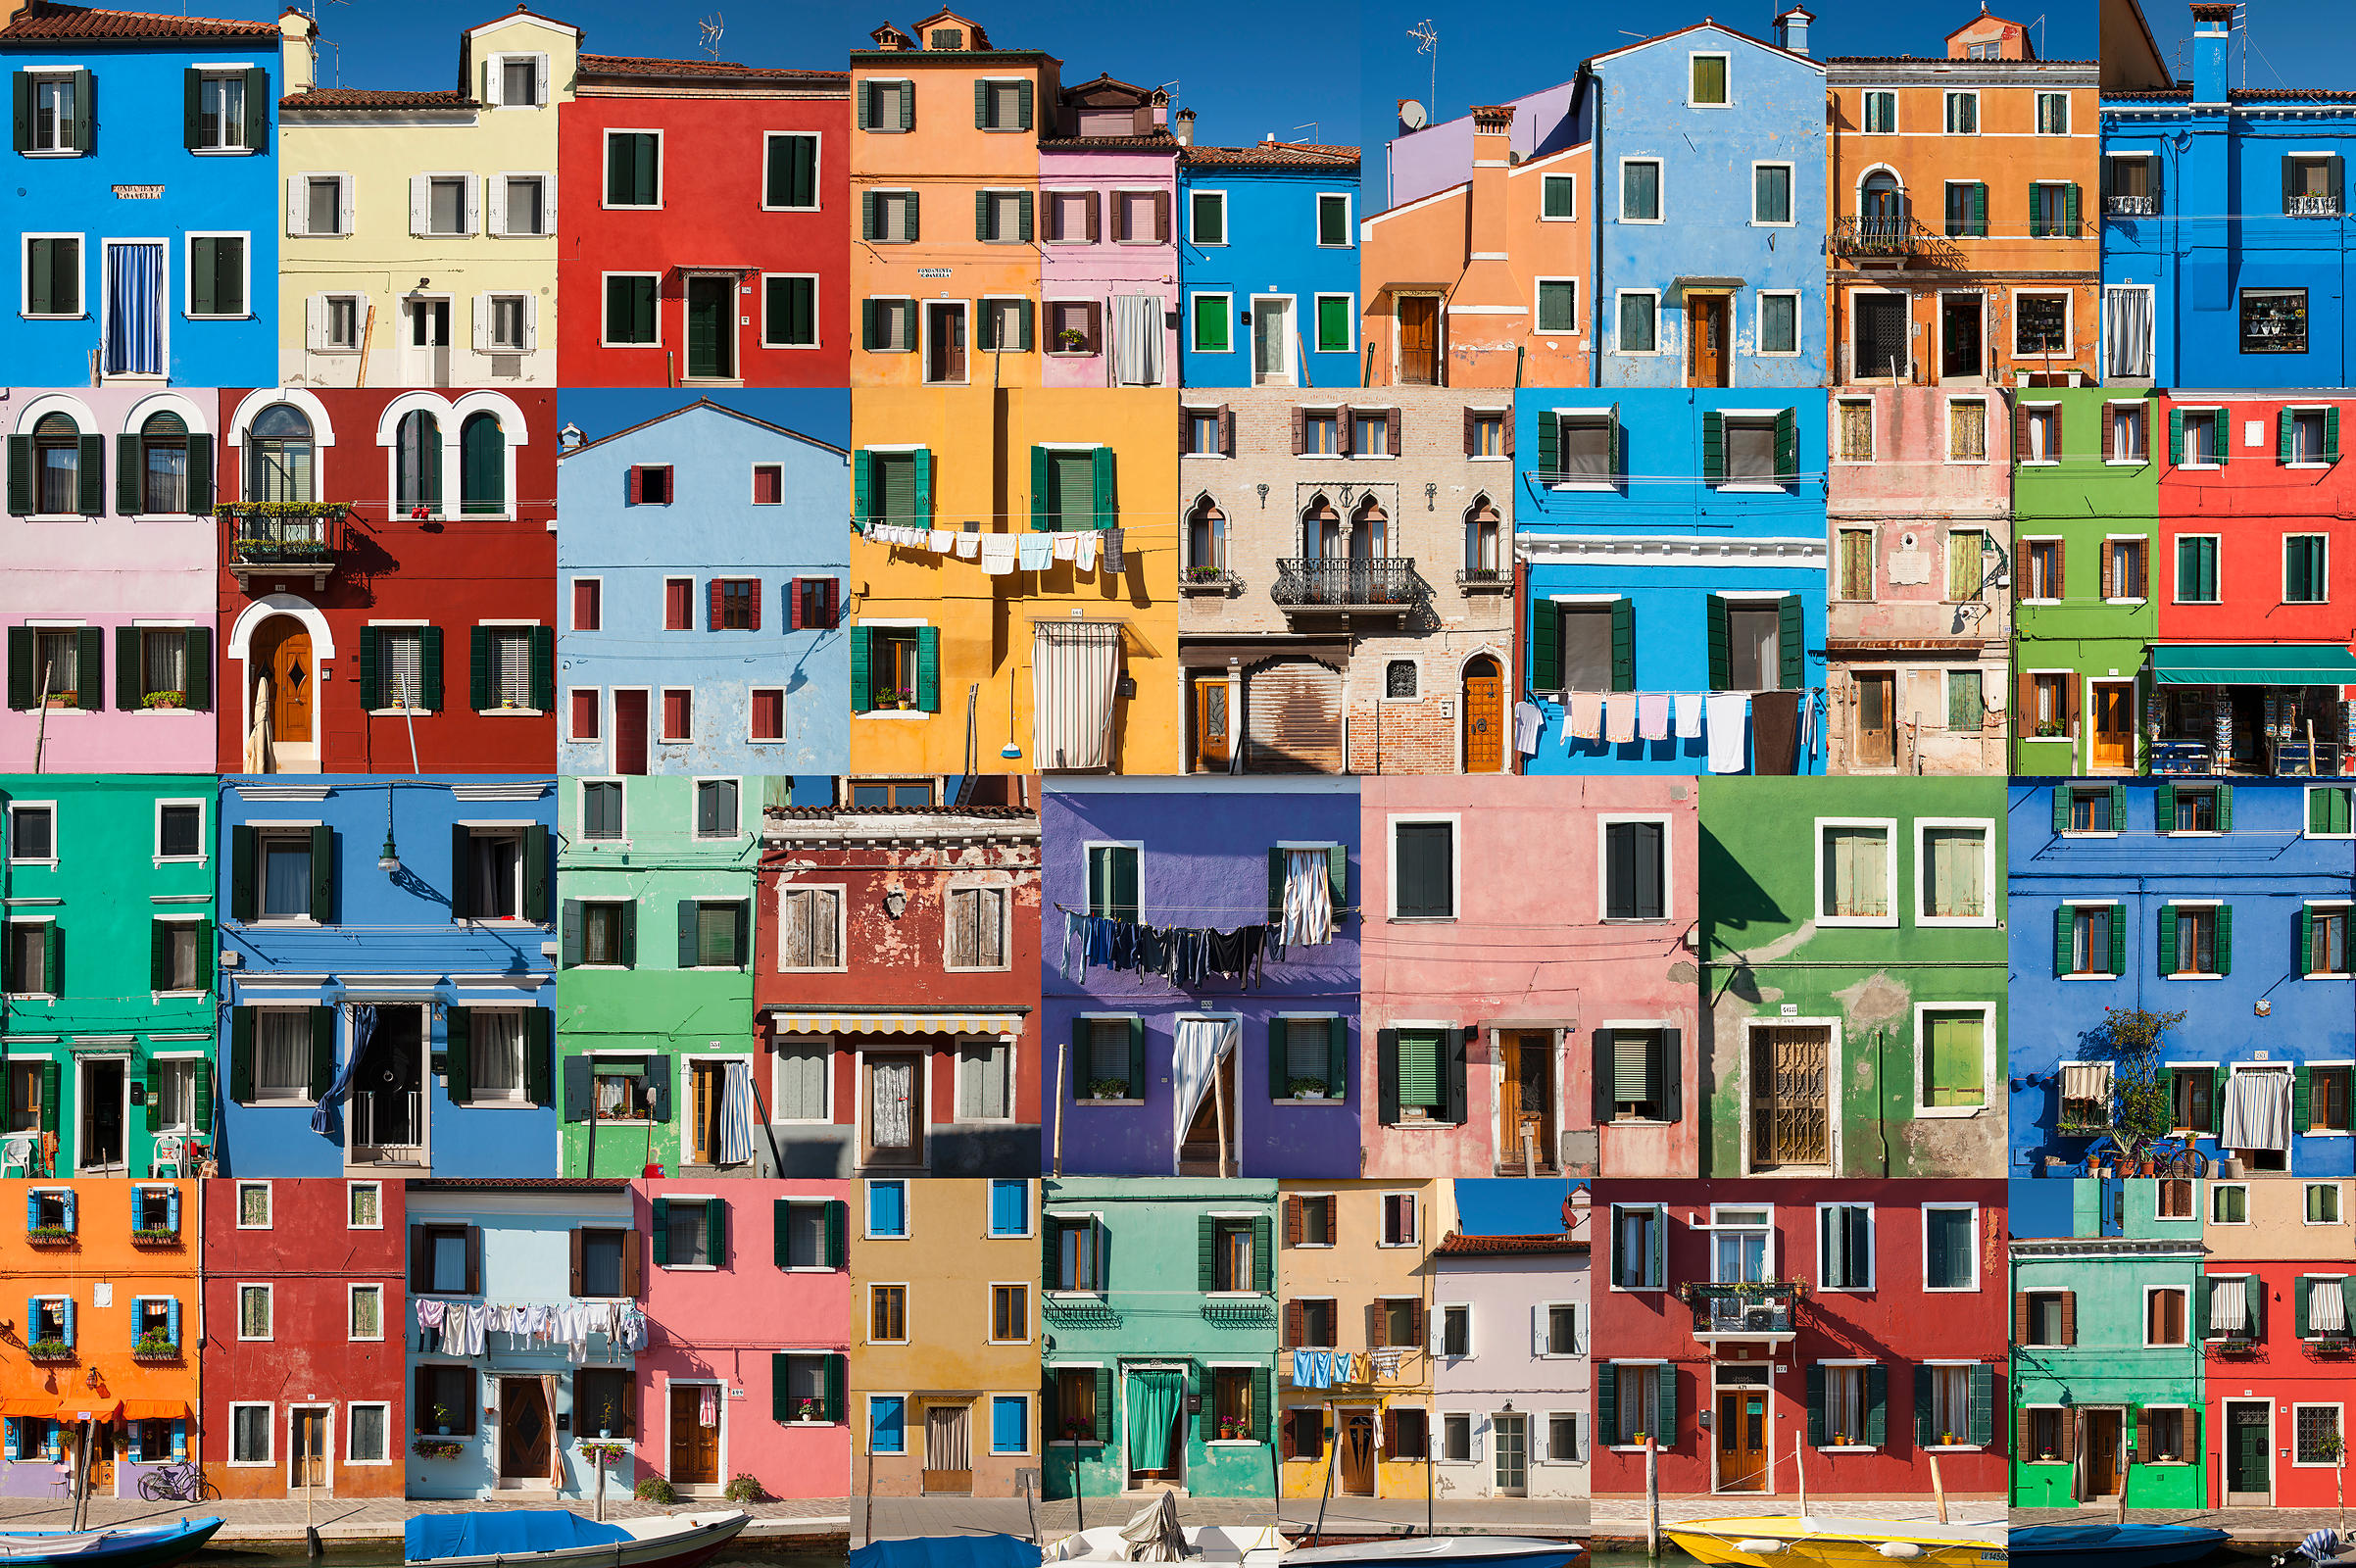 Collage of colorful buildings